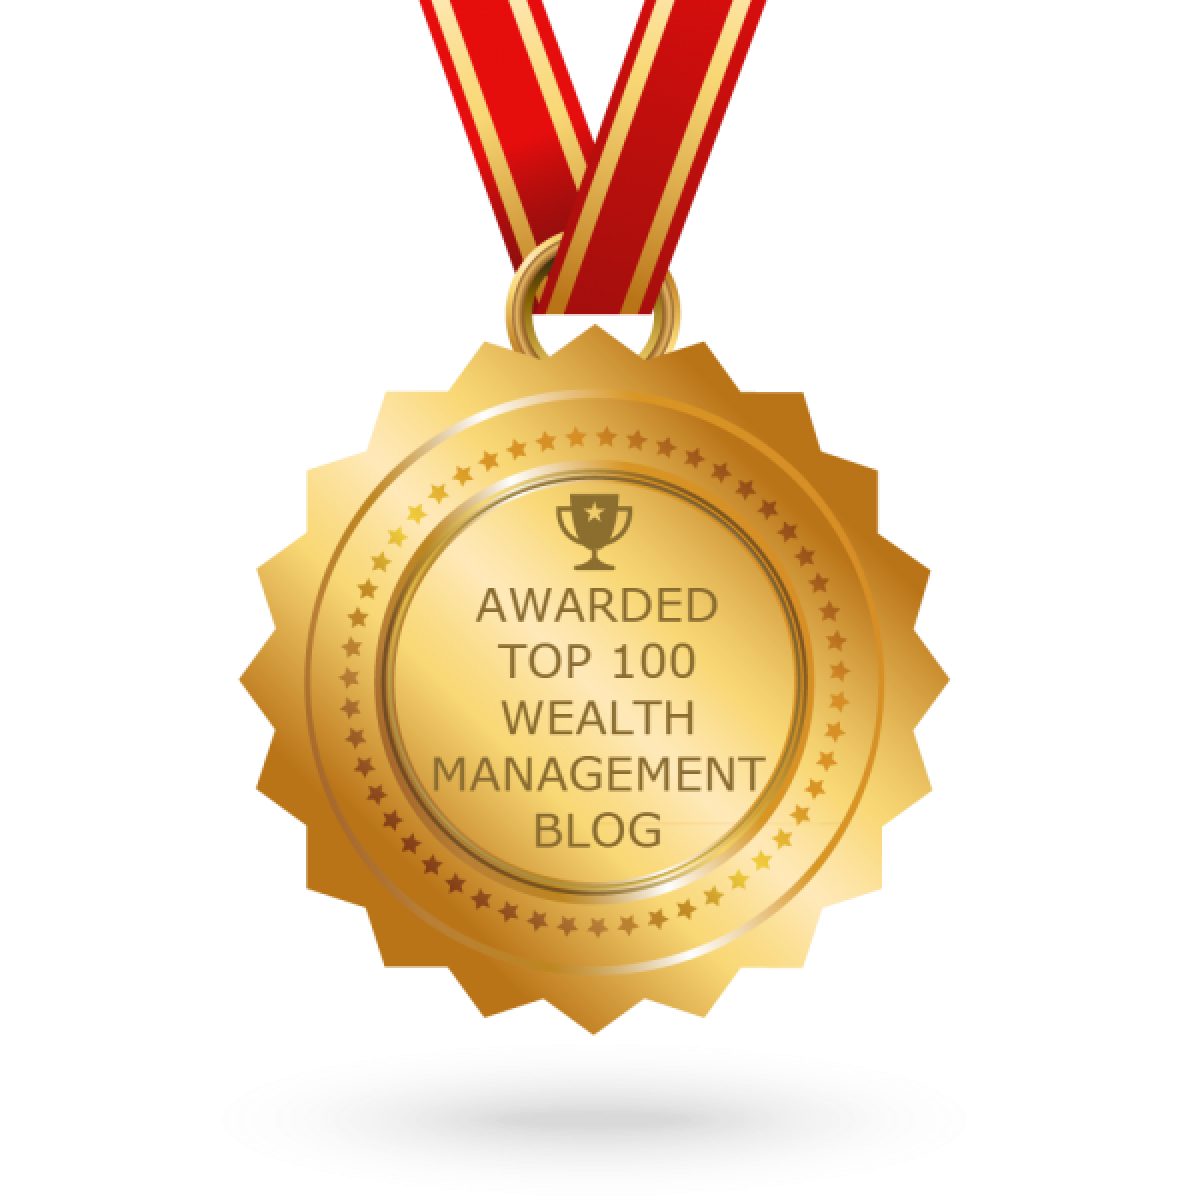 Flourish Wealth Management Recognized as one of the TOP 100 Wealth Management Blogs on the Web!